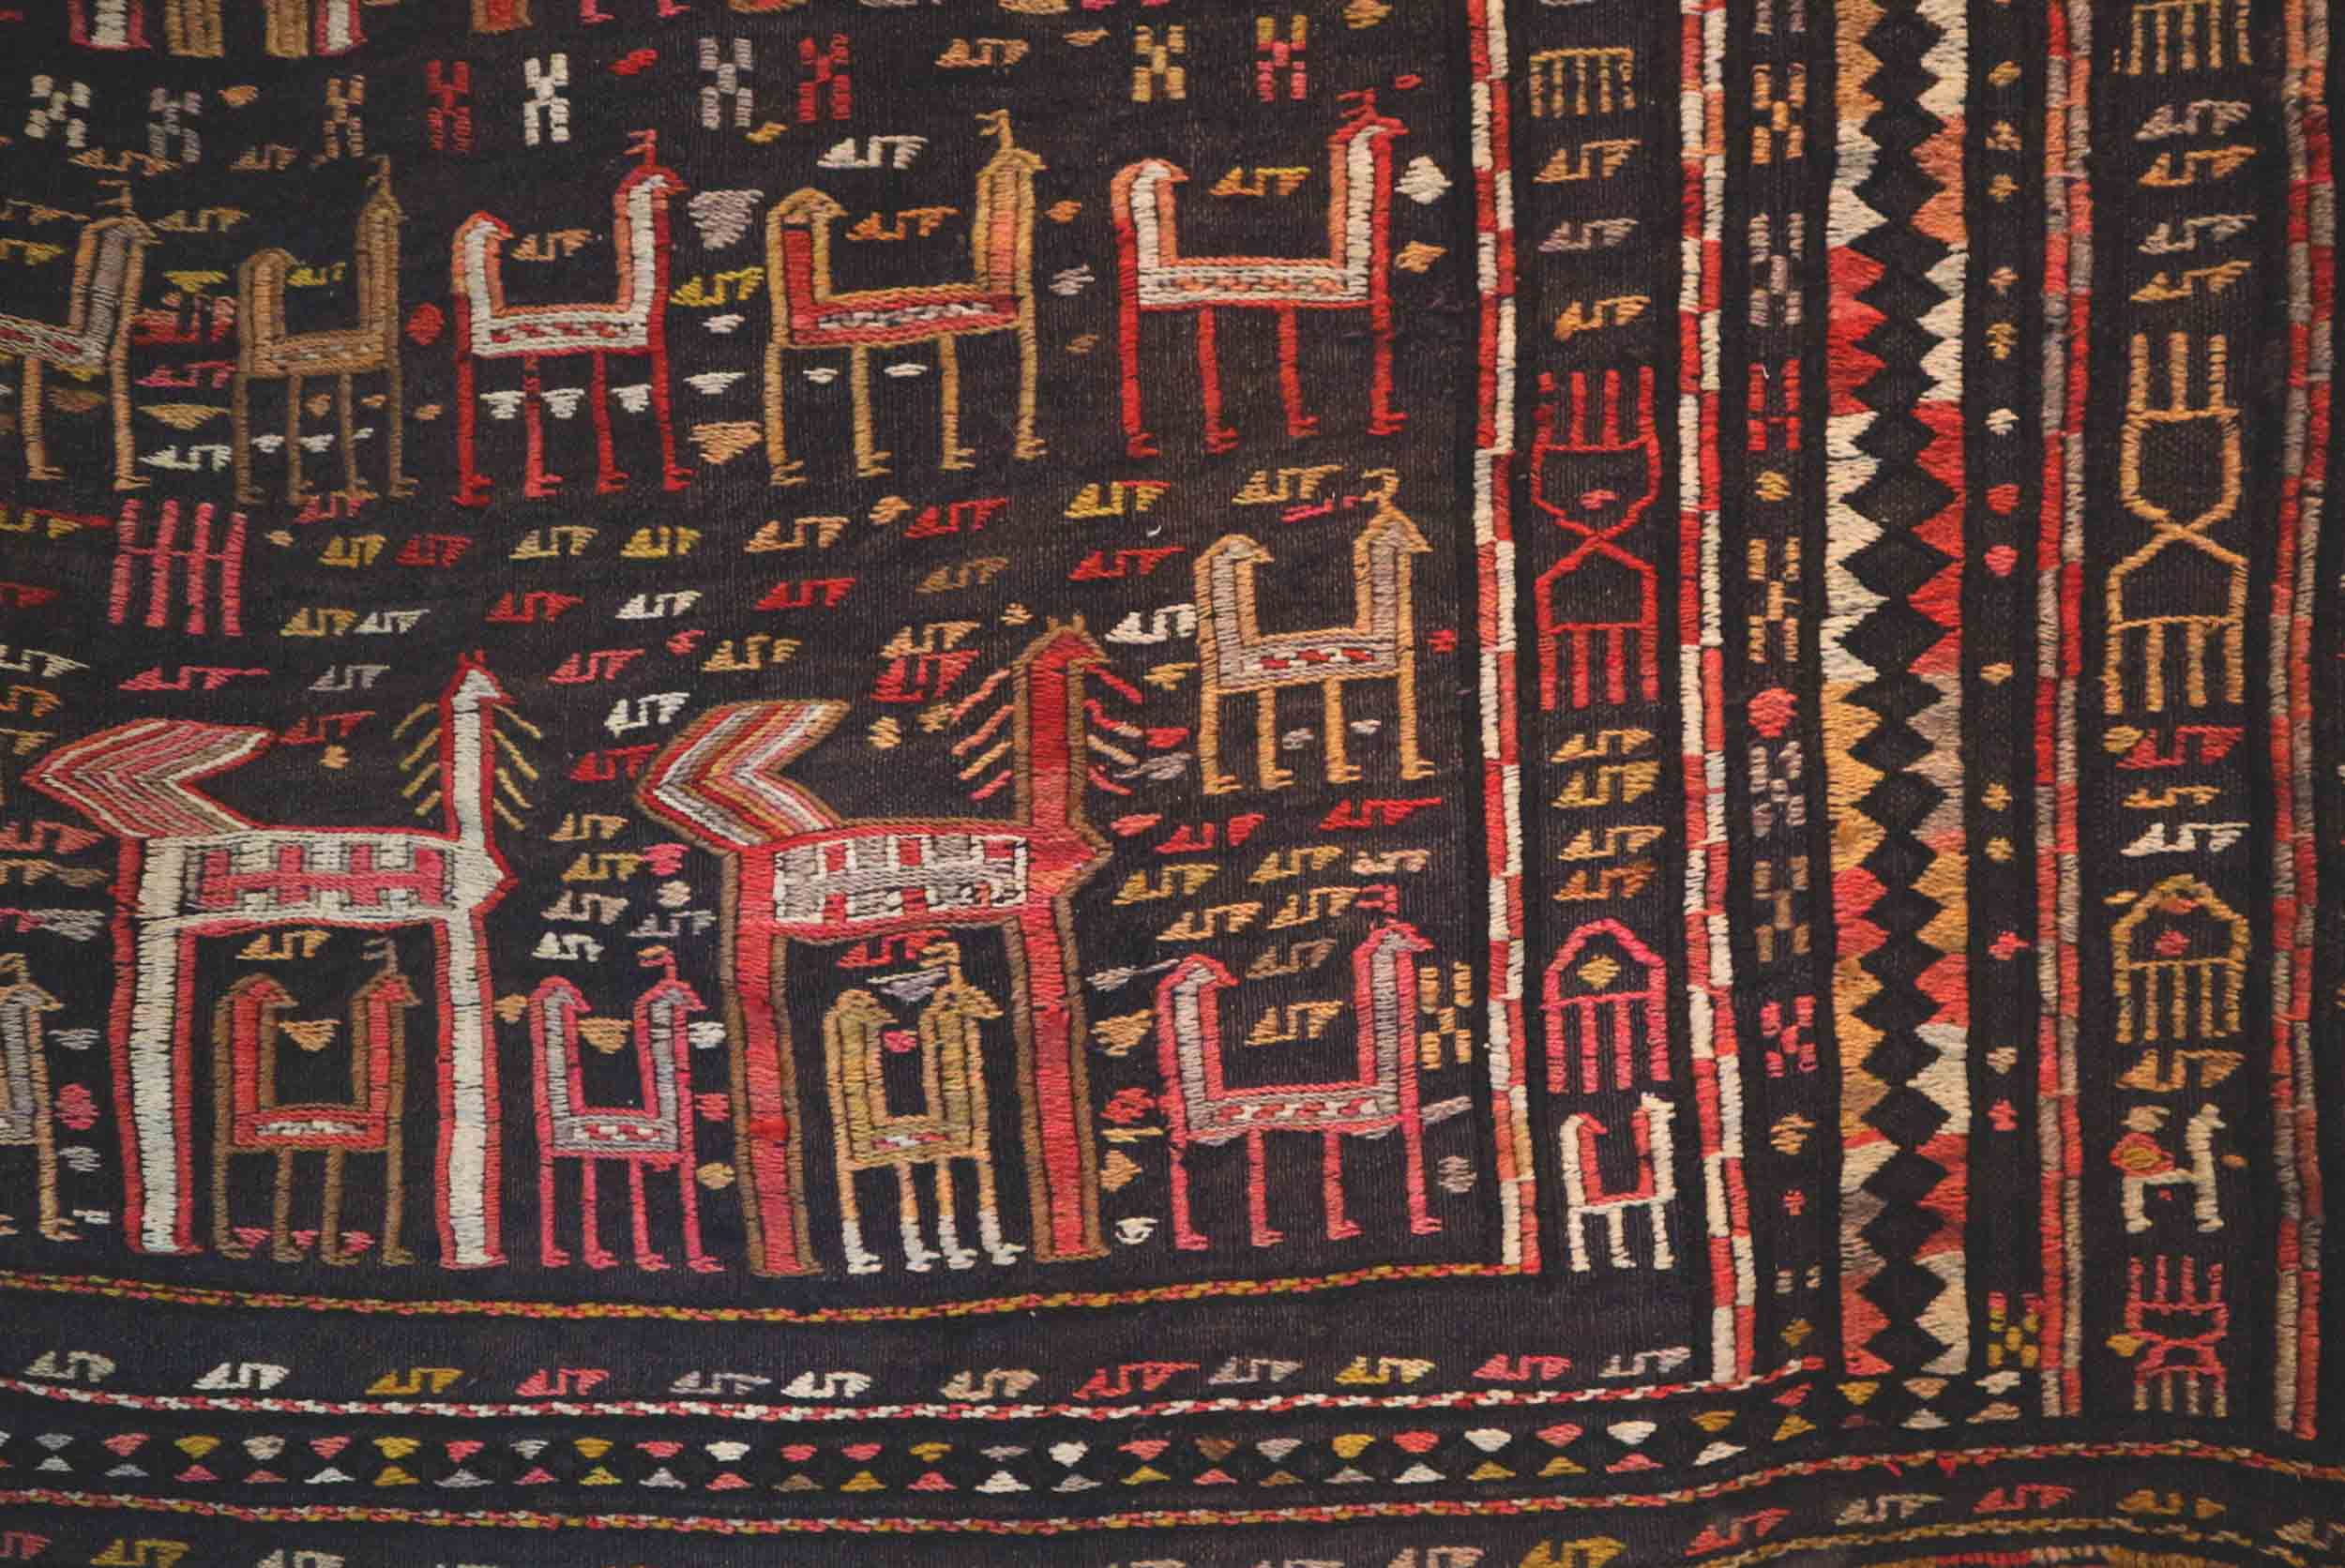 A fun aztec-style carpet in the Centre of Popular Creation